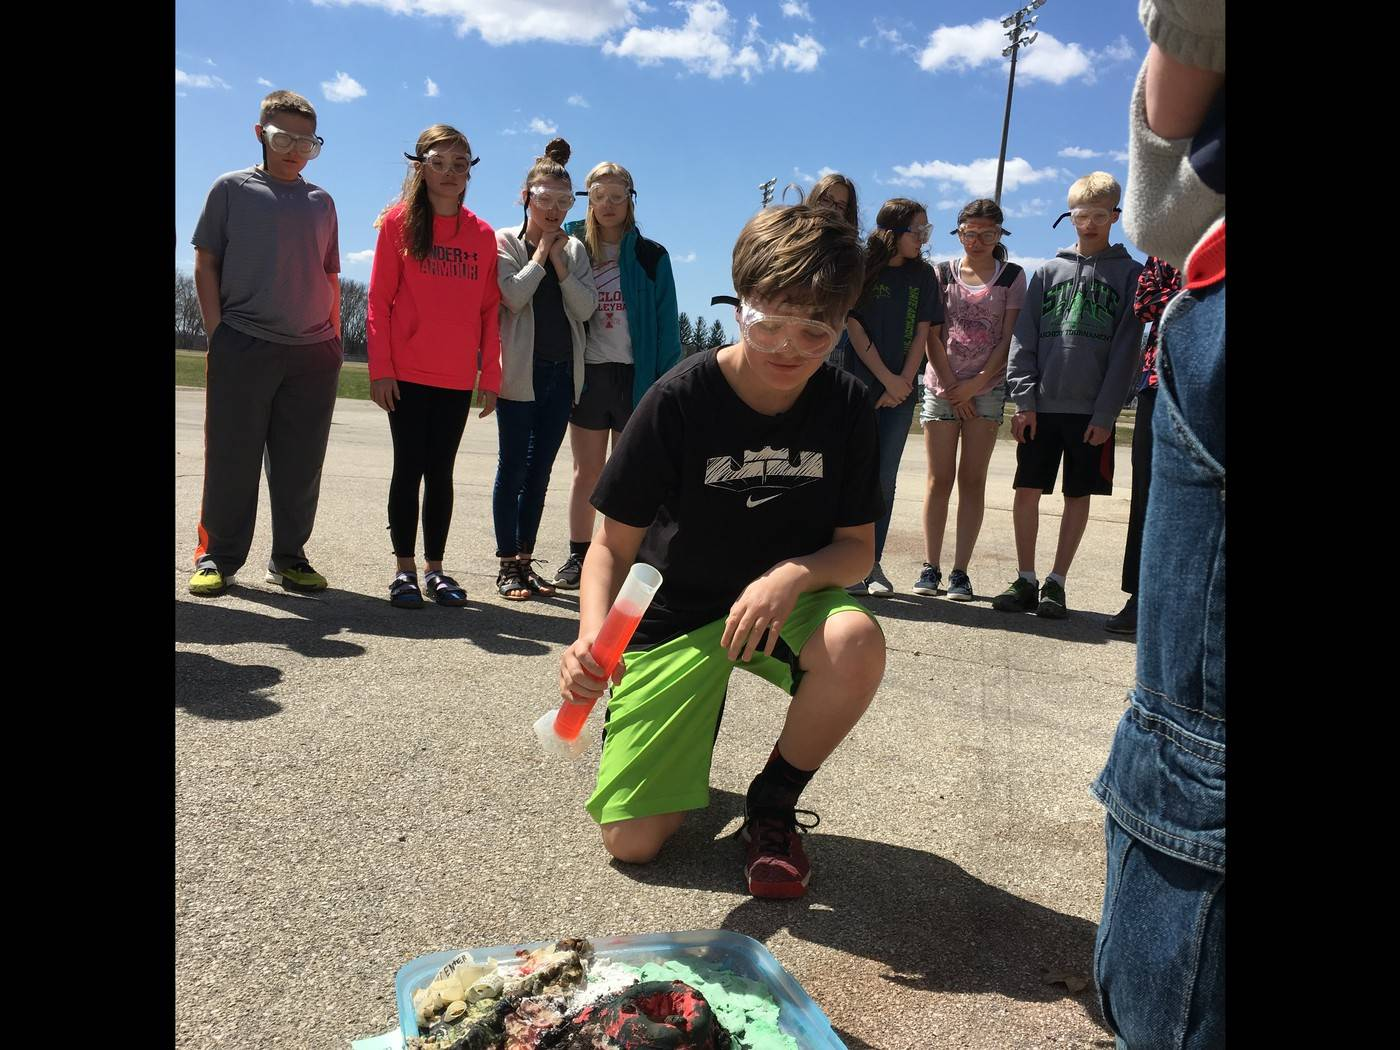 Students conducting an experiment outside